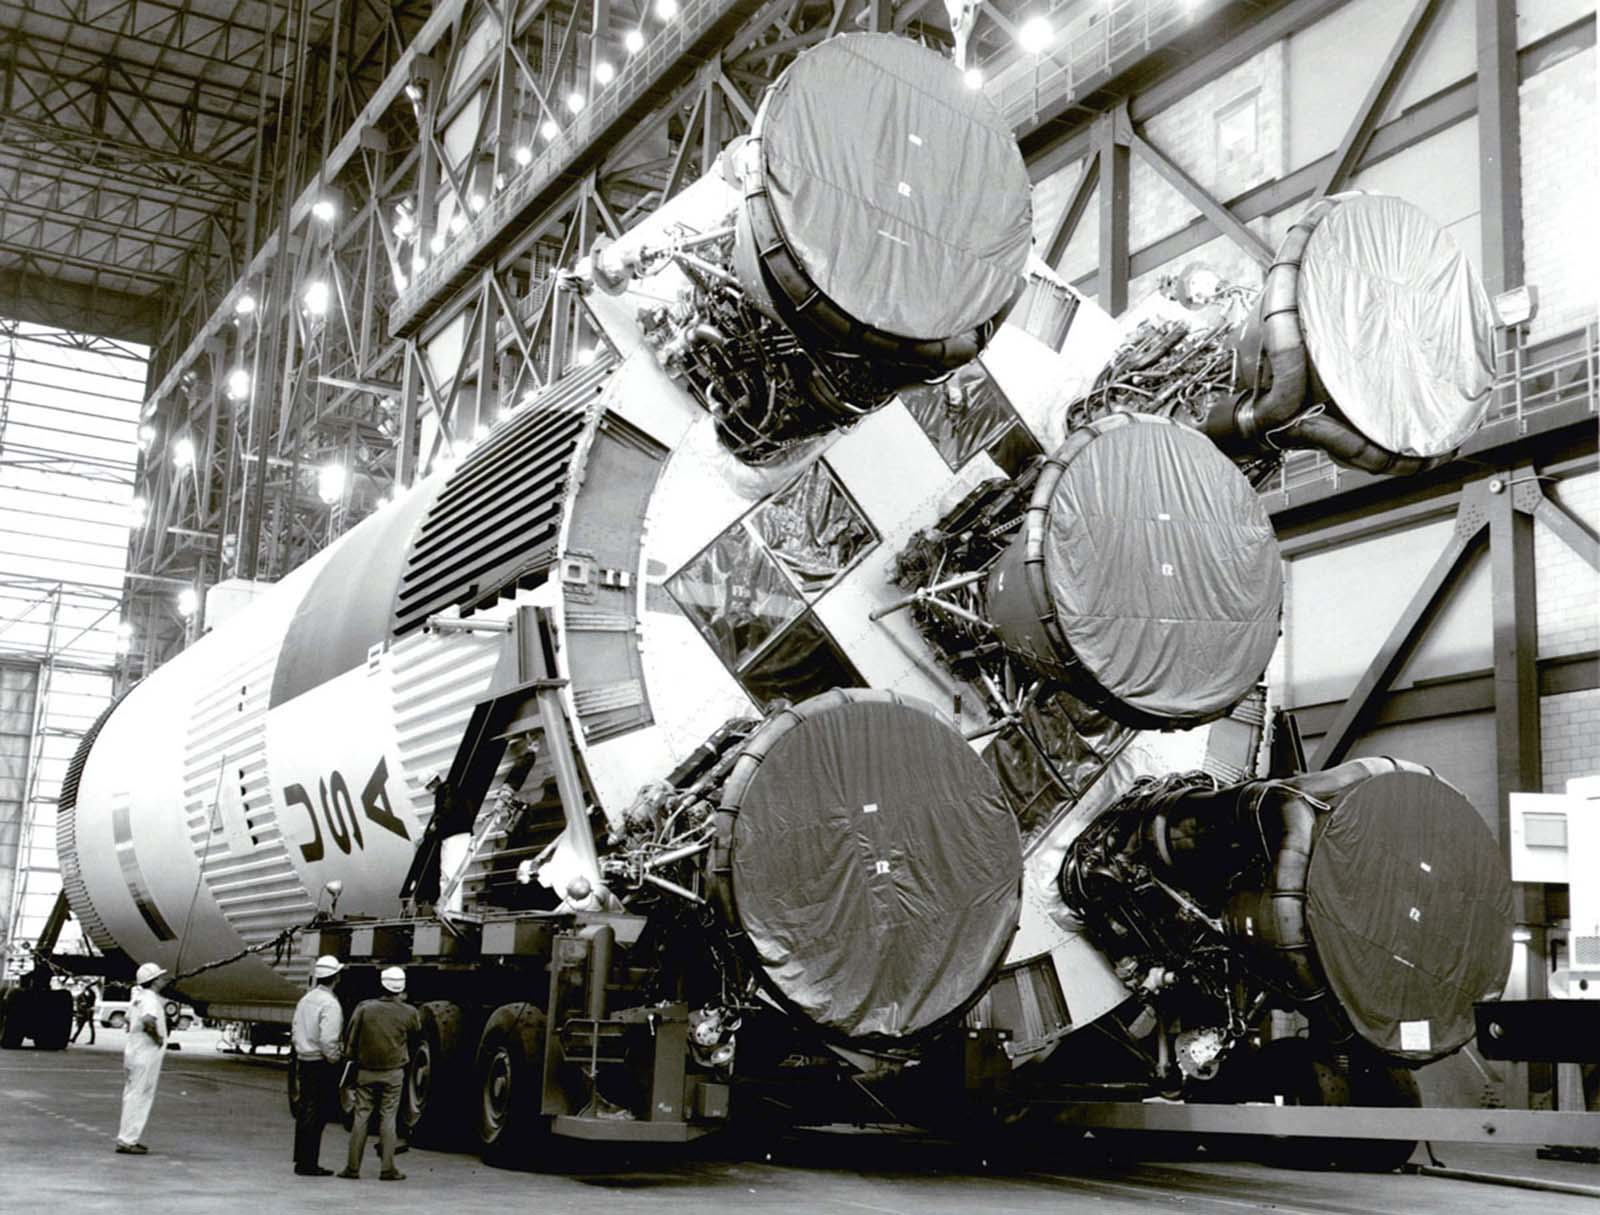 The S-1C booster for the Apollo 11 Saturn V waits inside the Vehicle Assembly Building at NASA's Kennedy Space Center in Florida on February 21, 1969.